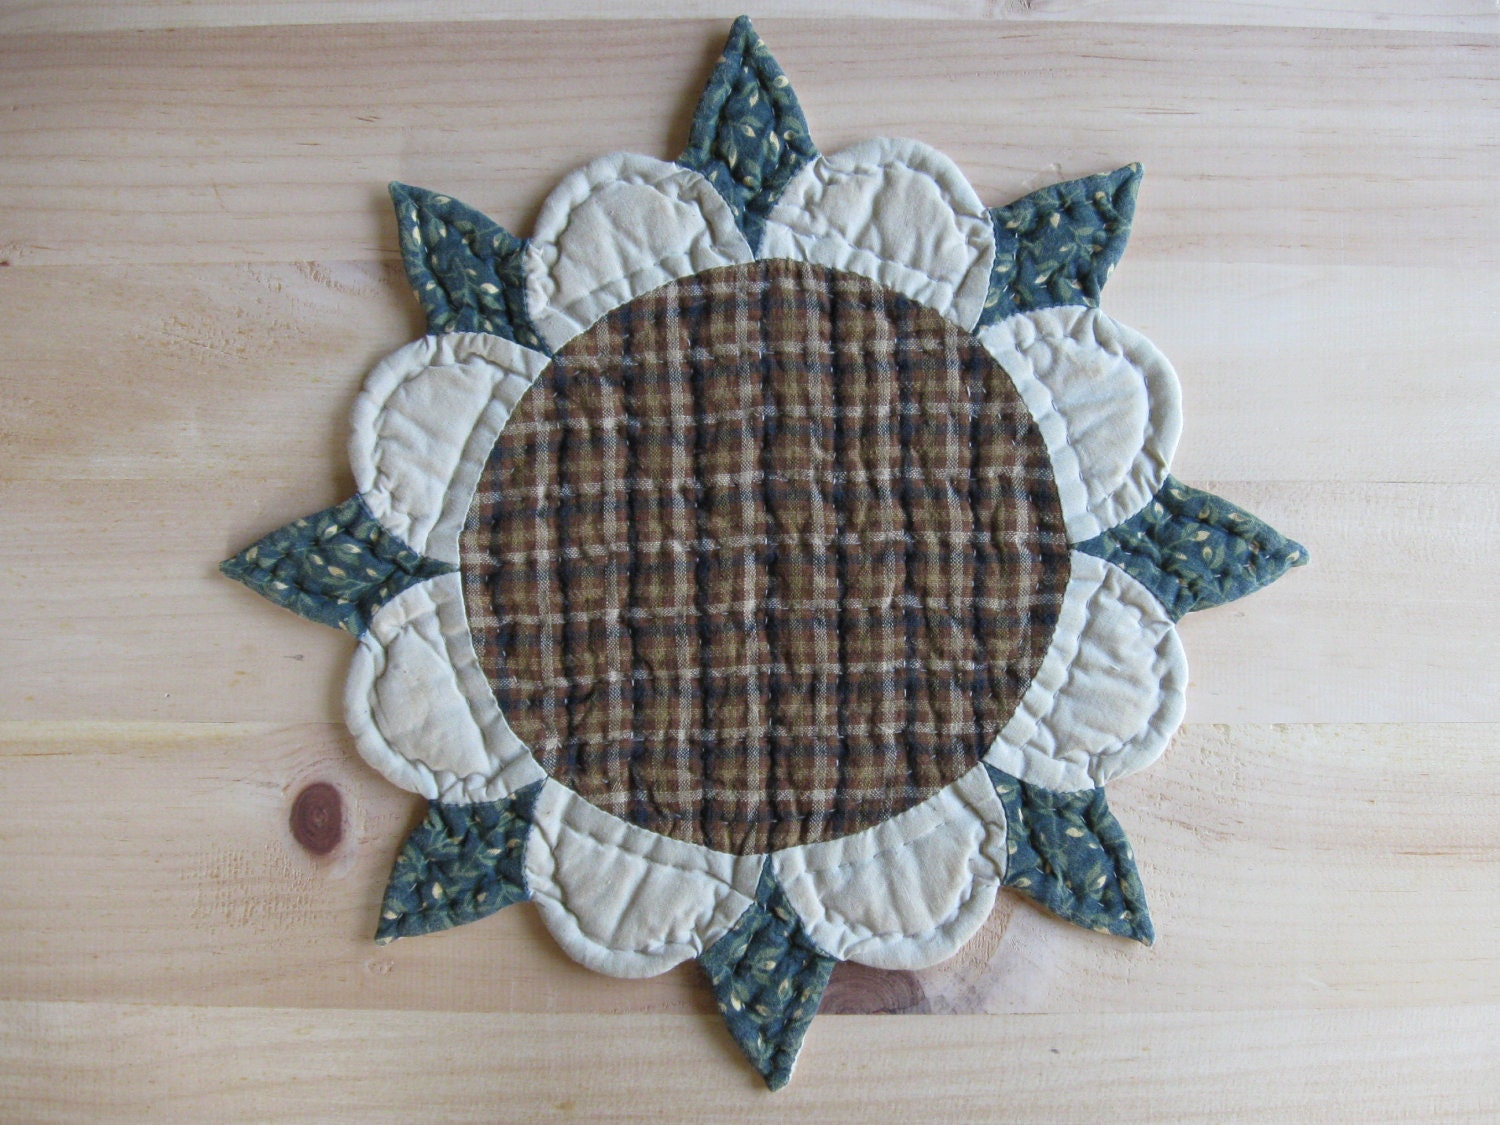 ... Table Topper Sunflower Rustic Decor Country Kitchen Decor Farmhouse